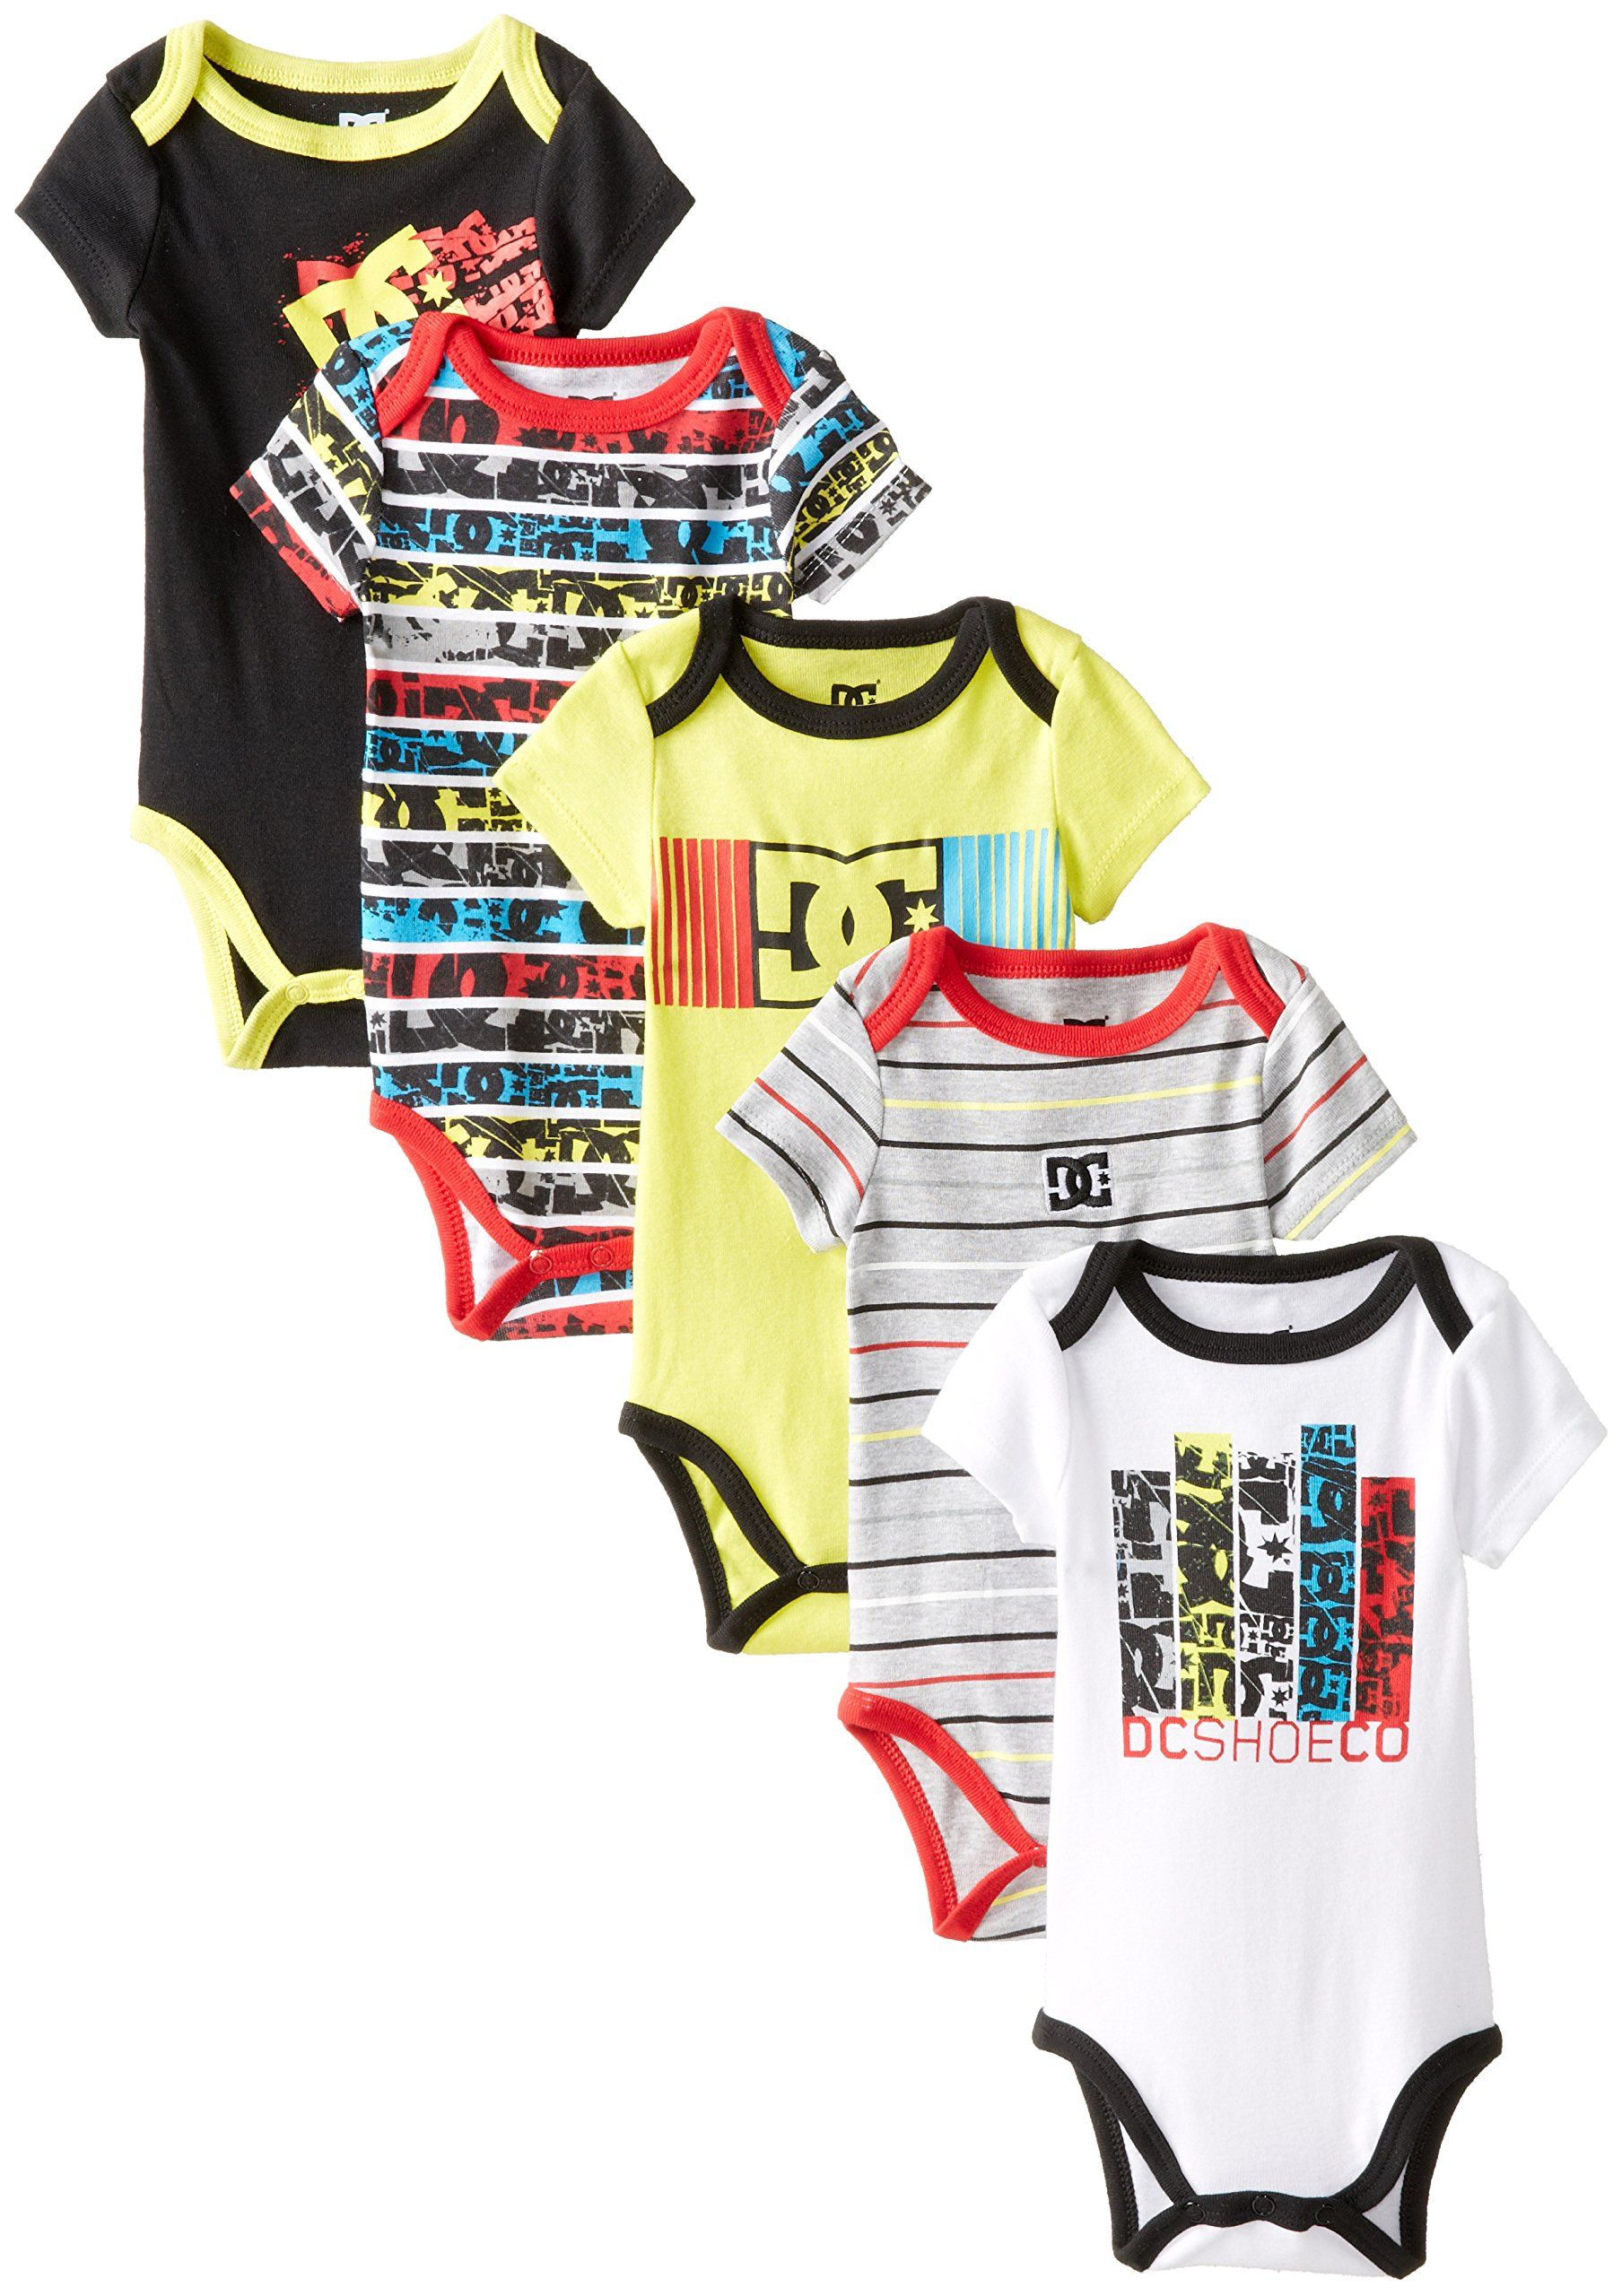 DC Shoes Co Baby Boys Newborn 5 Pack Bodysuits Yellow Black Red